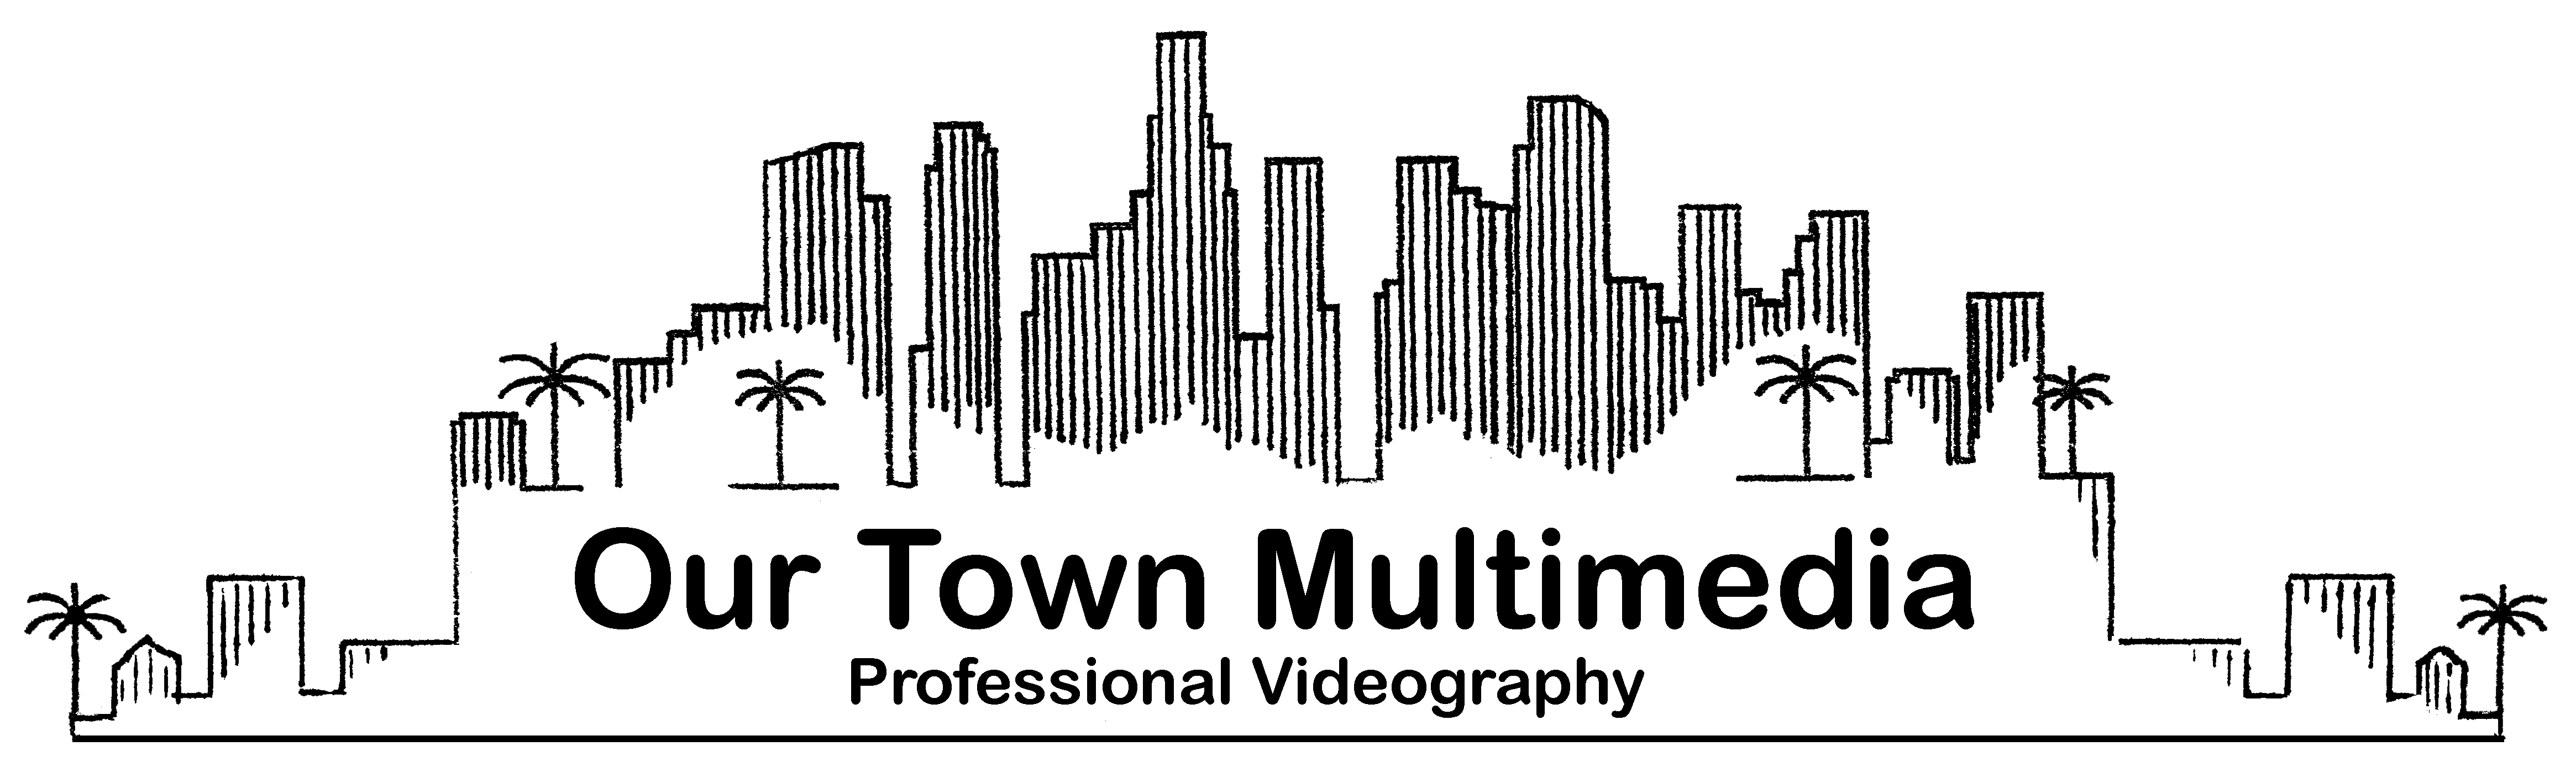 Our Town Multimedia Cityscape